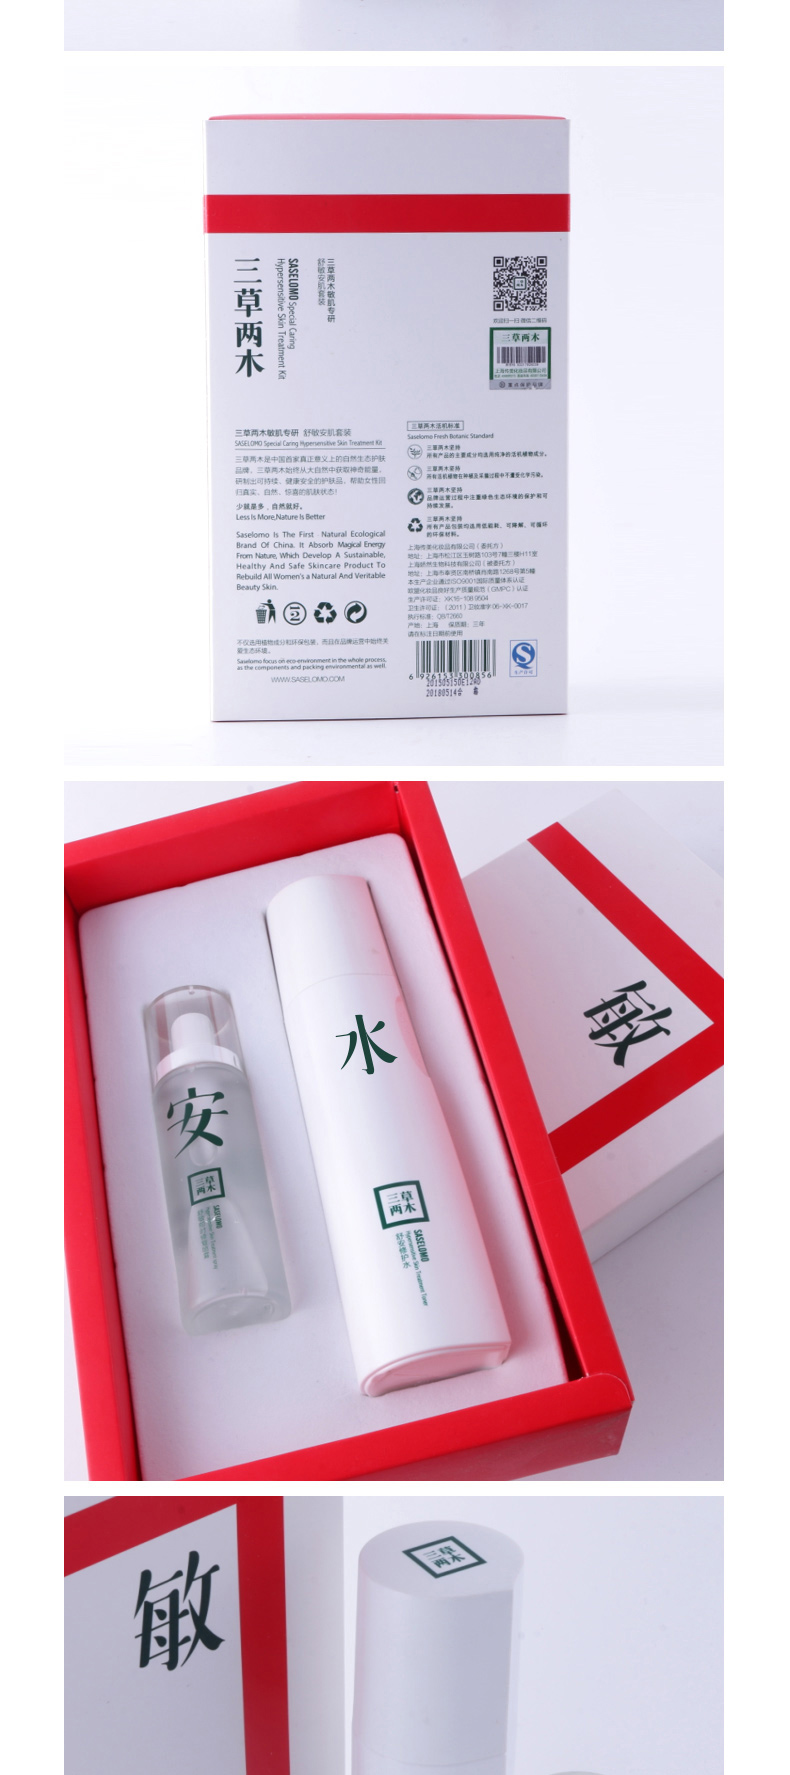 SASELOMO Skin Conditioner Toner Kit / 三草两木 舒敏健康水套装